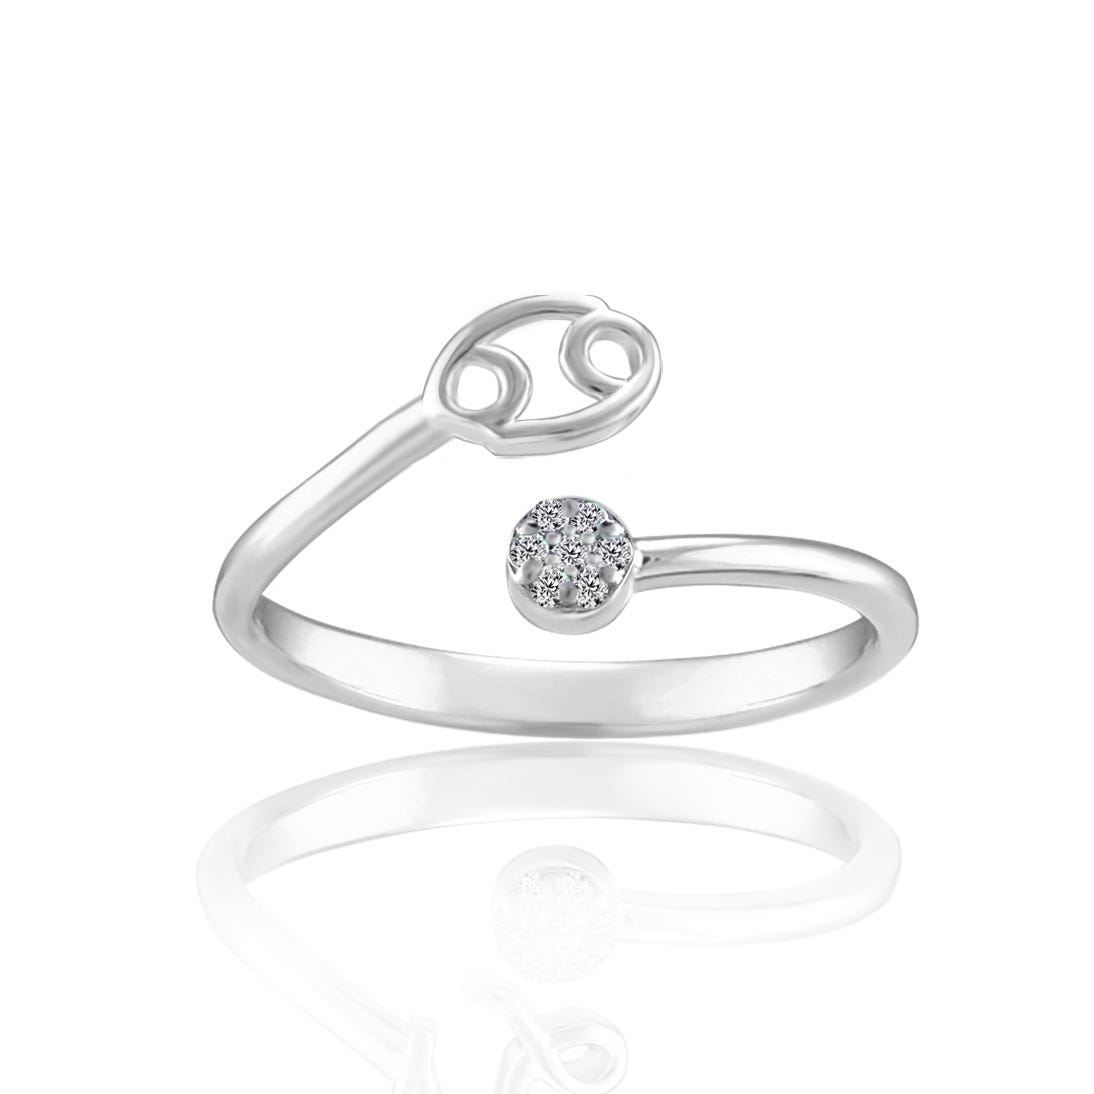 Zodiac Diamond Cancer Fashion Ring in Sterling Silver